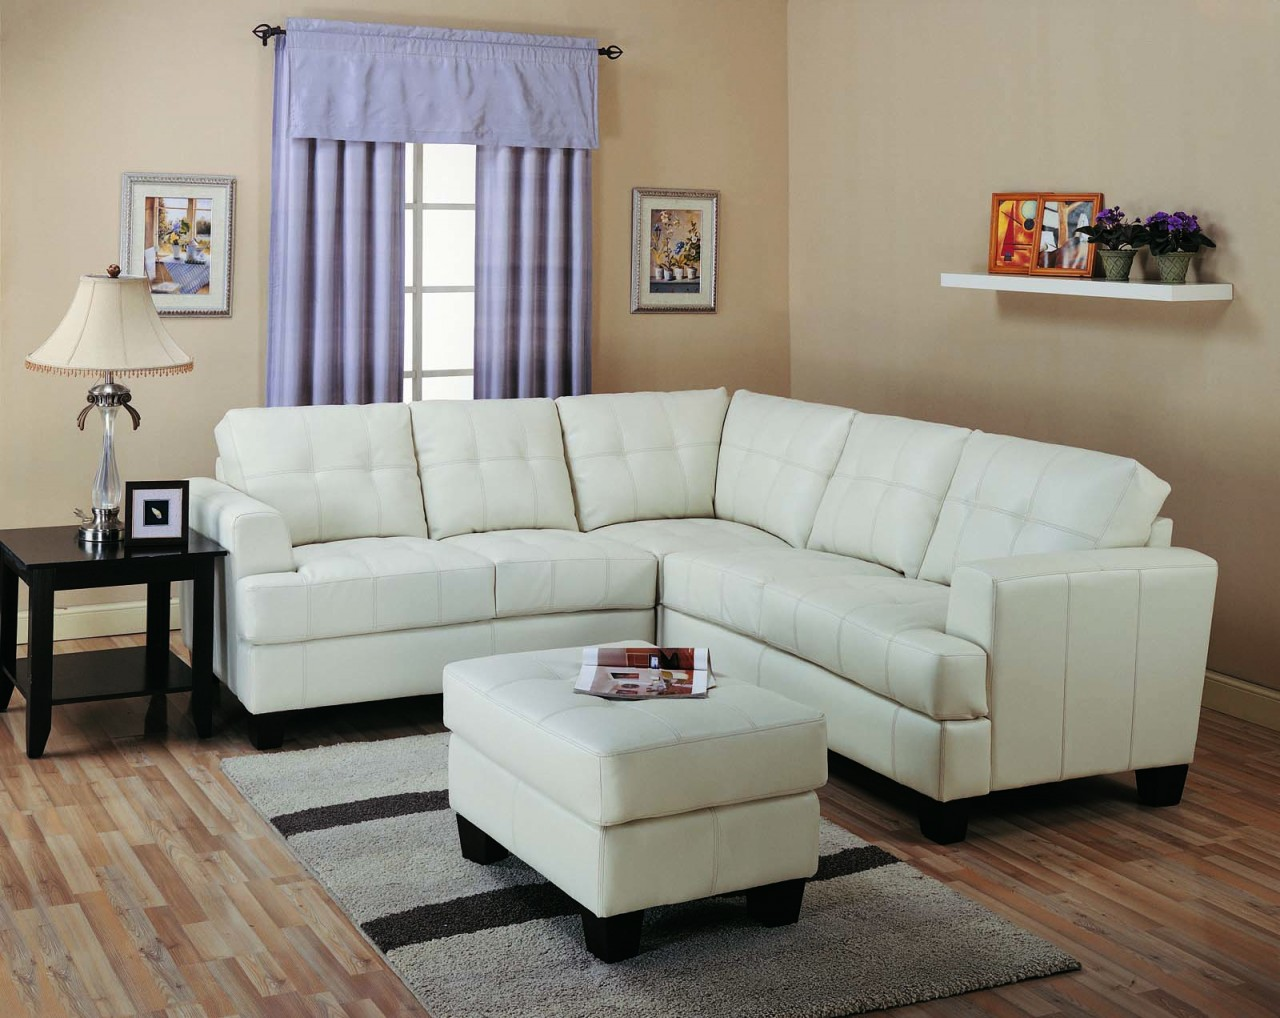 Types of best small sectional couches for small living for Small sectional sofa